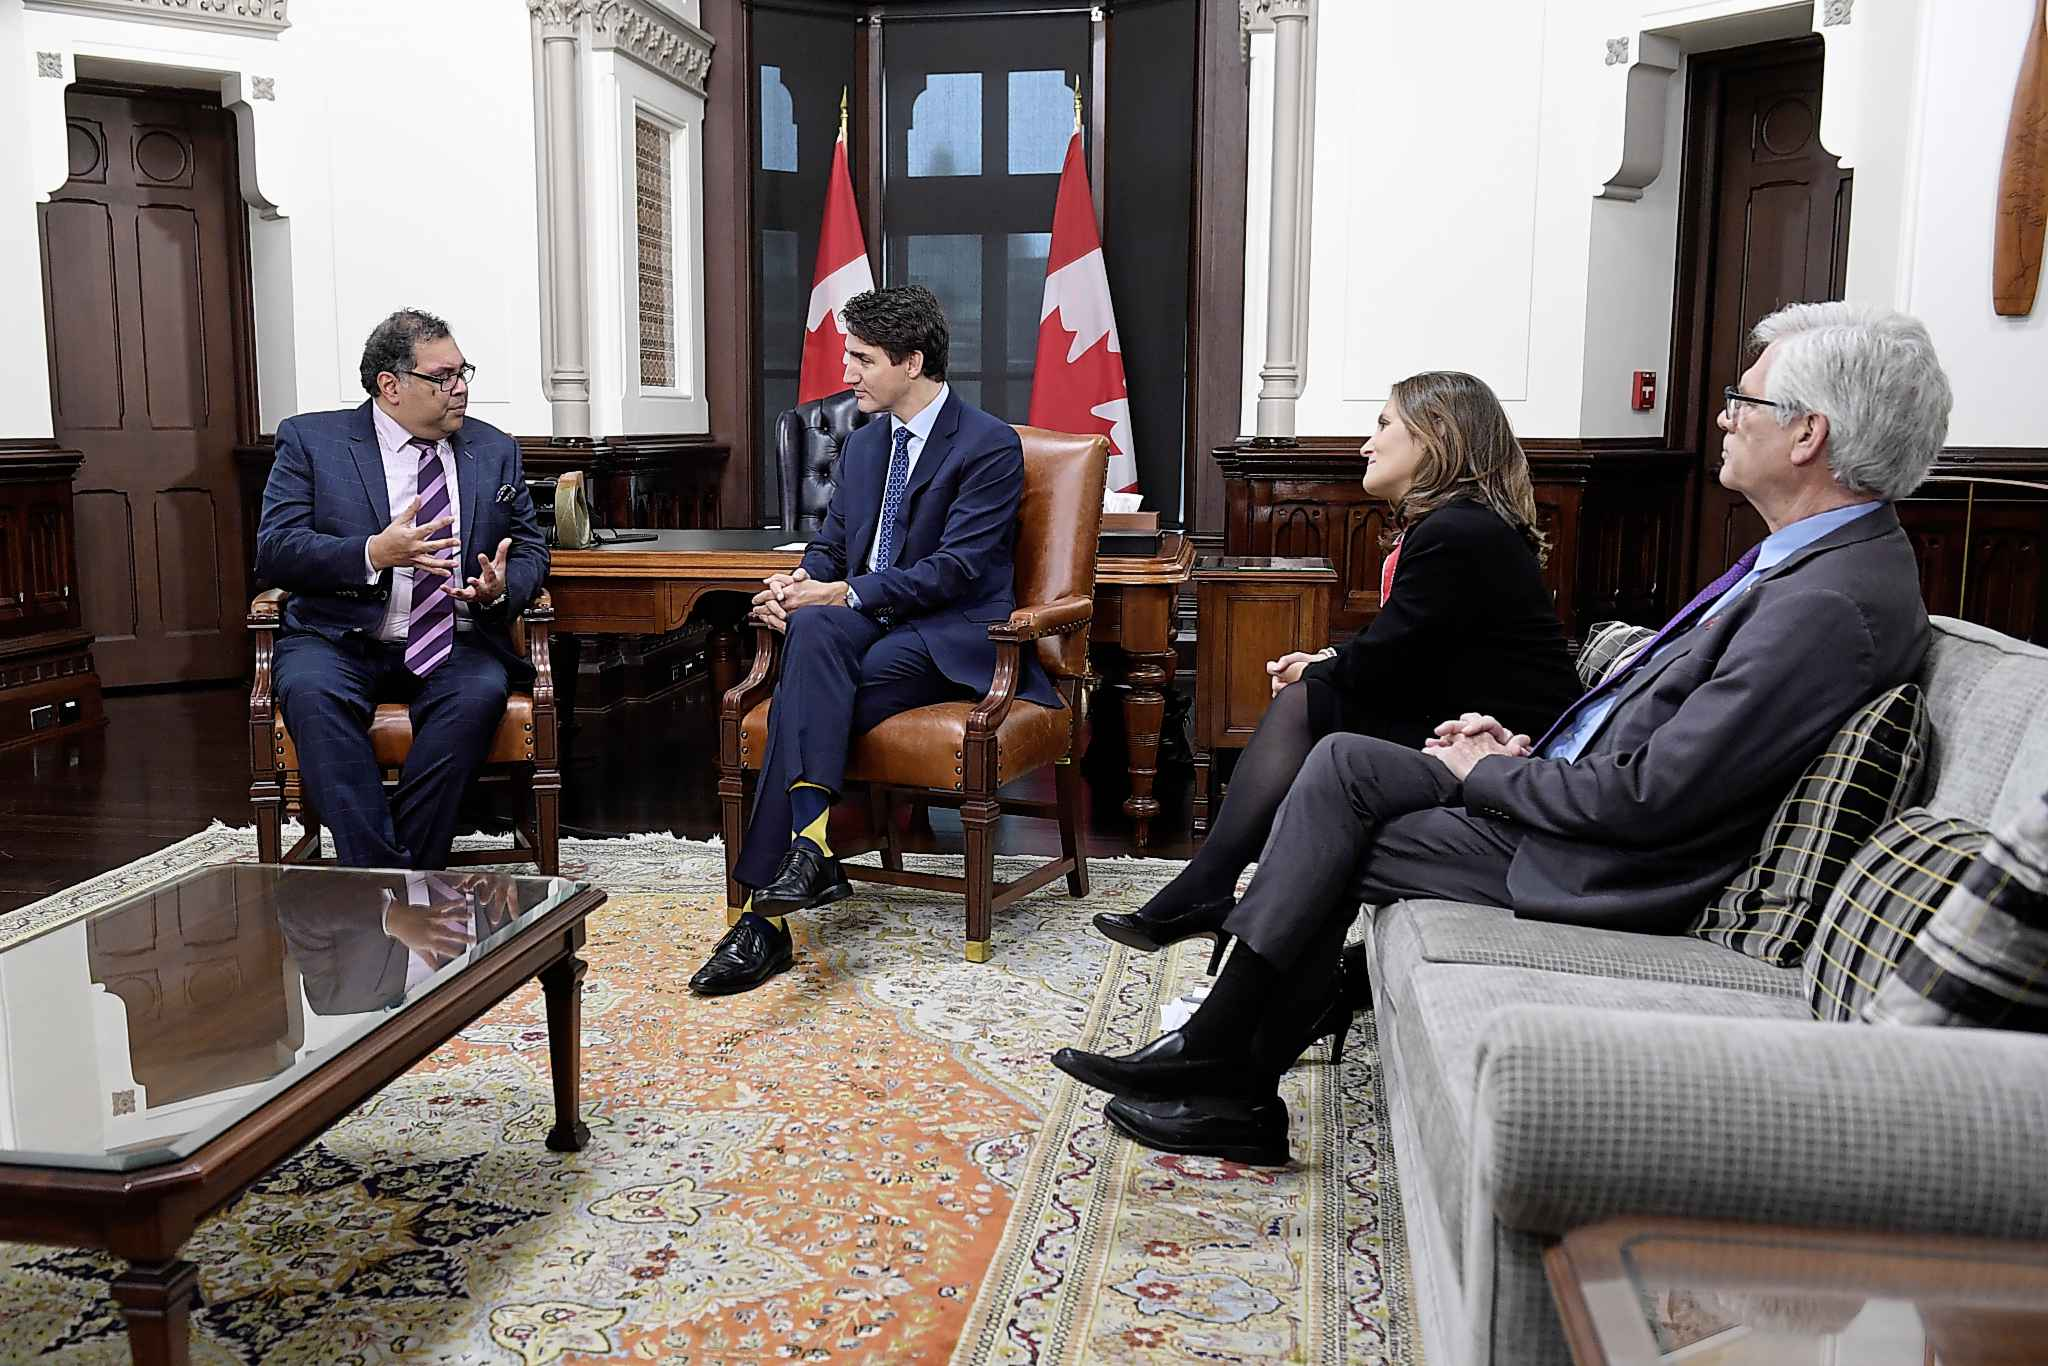 Deputy Prime Minister Chrystia Freeland and Jim Carr, right, look on as Prime Minister Justin Trudeau speaks with Calgary mayor Naheed Nenshi in his office on Parliament Hill. (Adrian Wyld / Canadian Press)